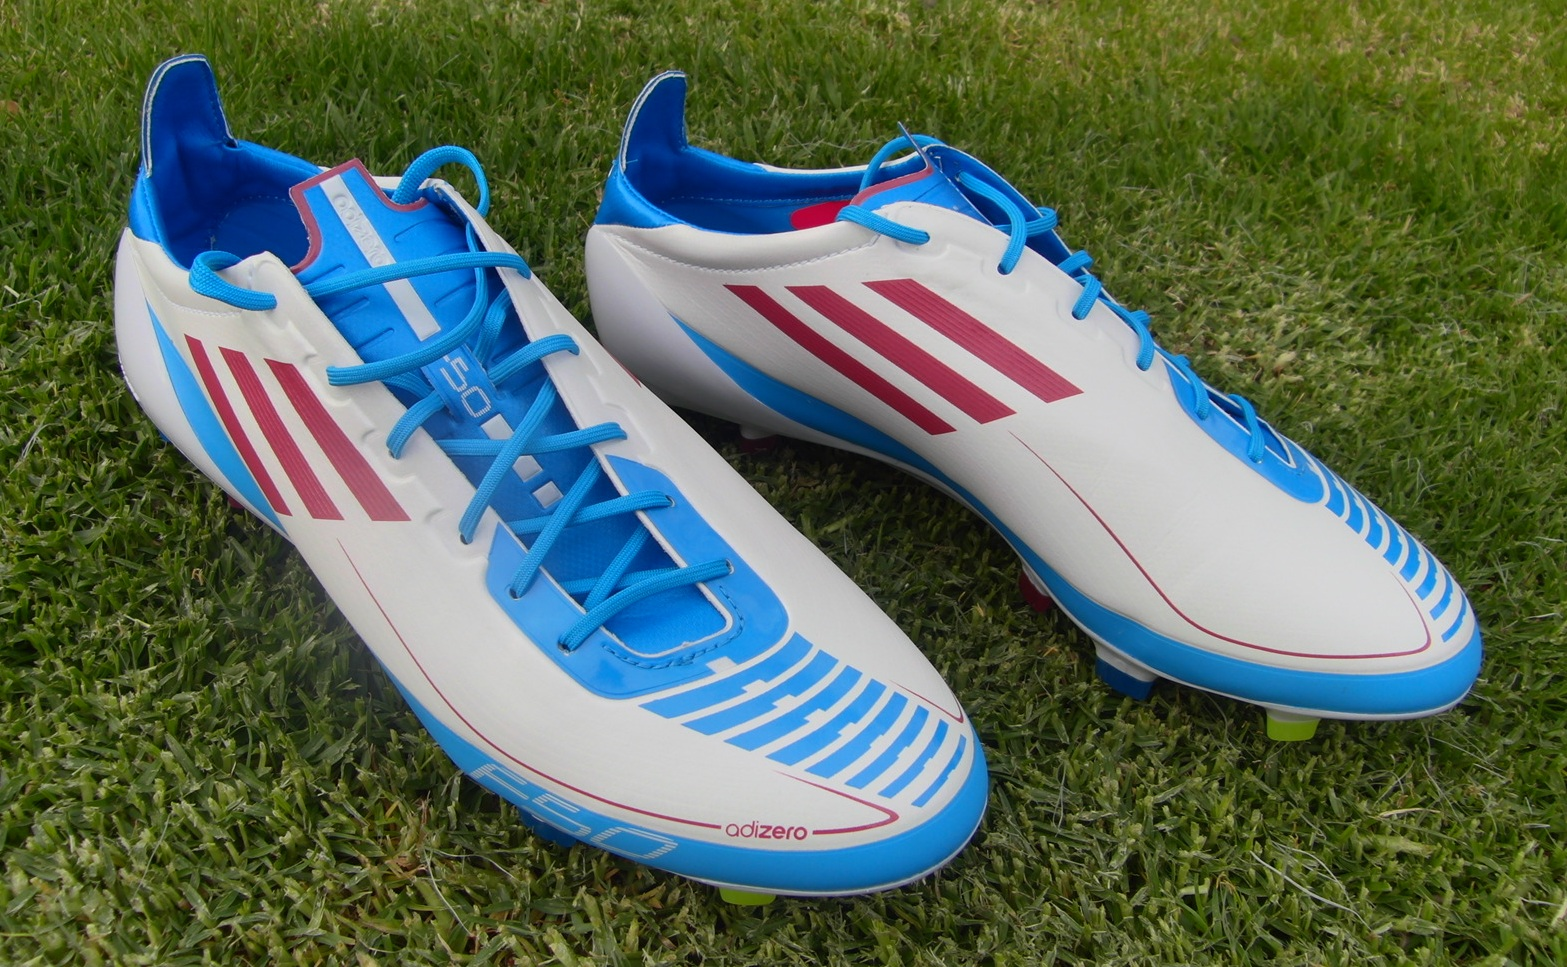 adidas f50 adizero prime review soccer cleats 101. Black Bedroom Furniture Sets. Home Design Ideas